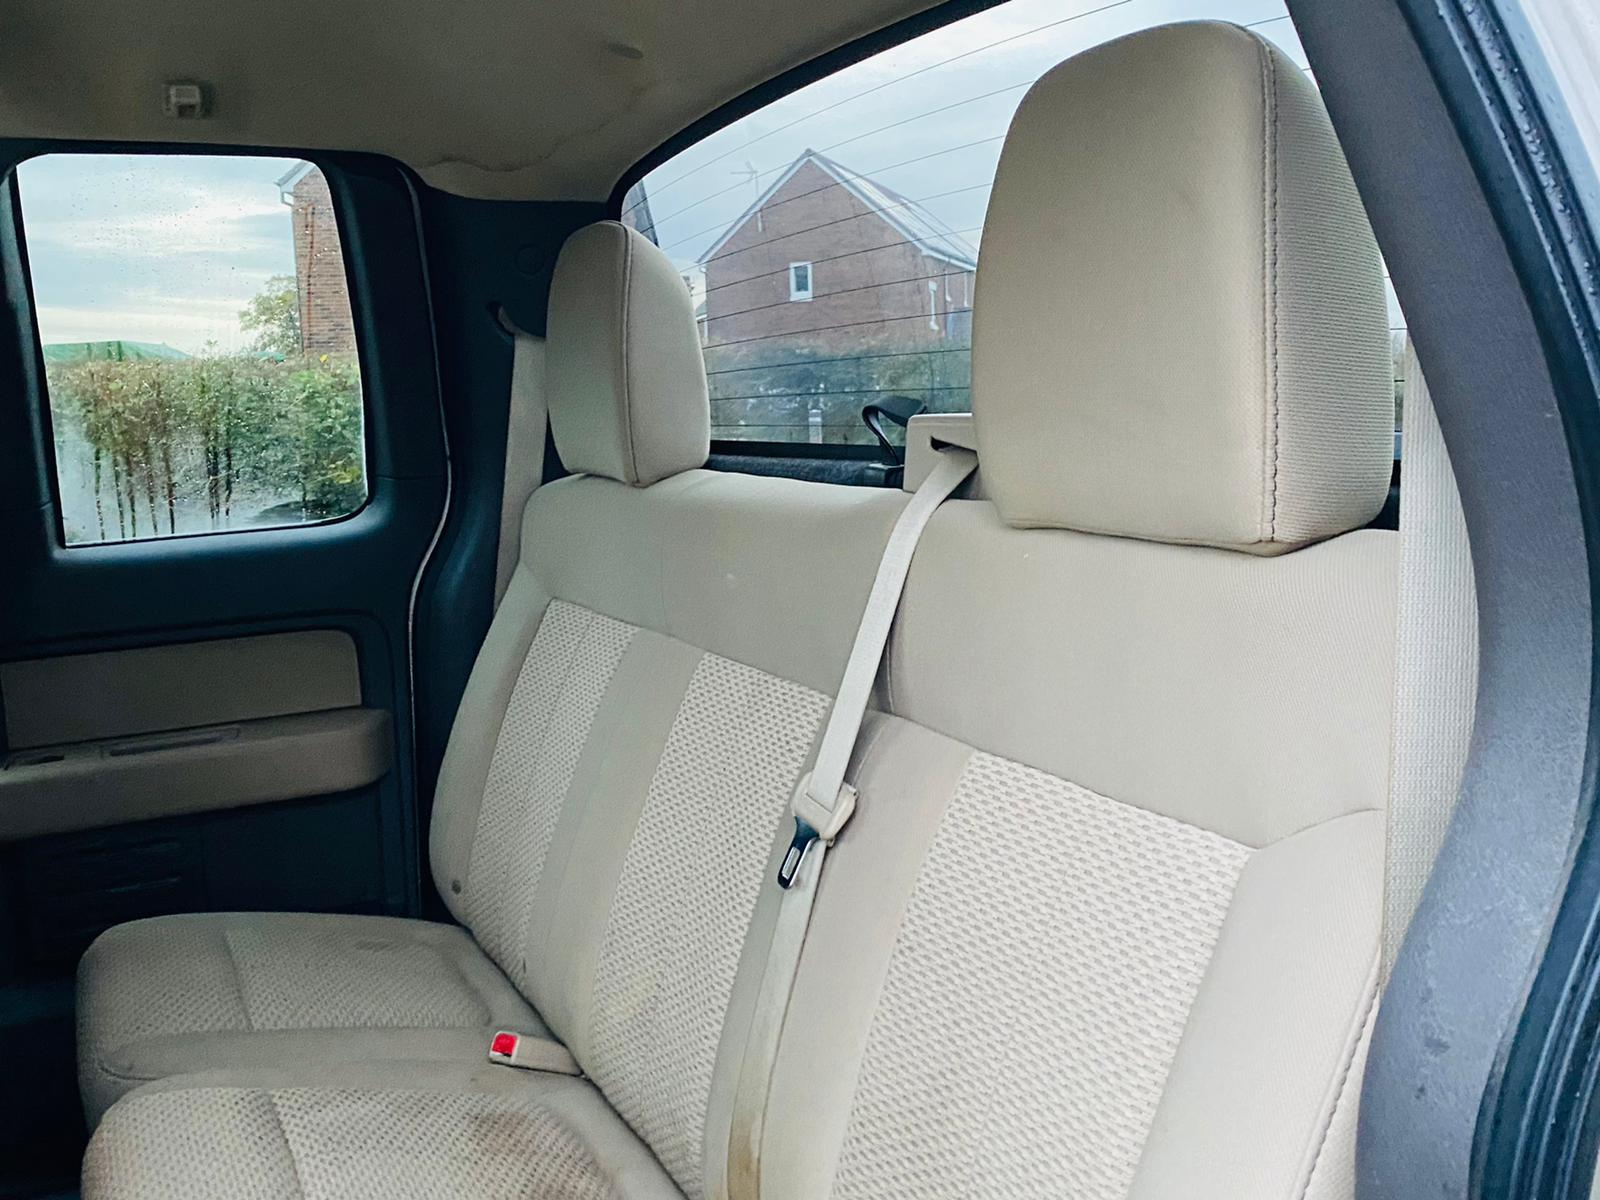 (RESERVE MET) Ford F-150 XLT 4.6L V8 Supercab - 2010 Year - 6 Seats - Fresh Imports - Image 24 of 39